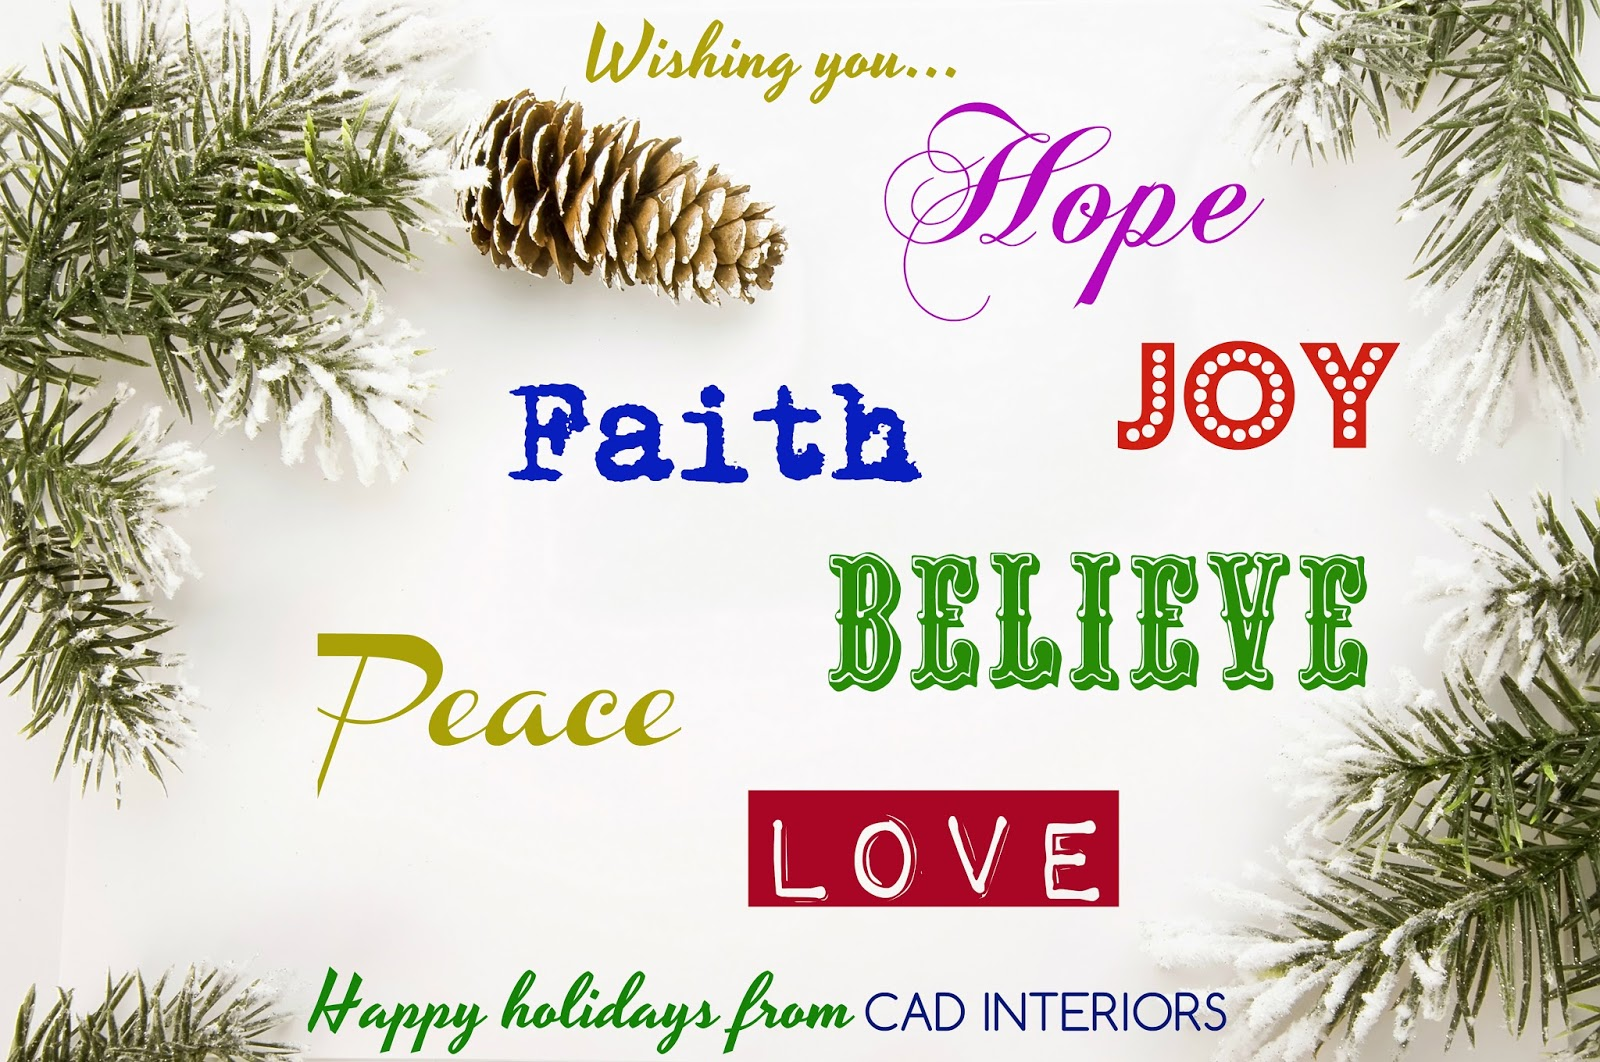 Christmas holiday greetings quotes sayings